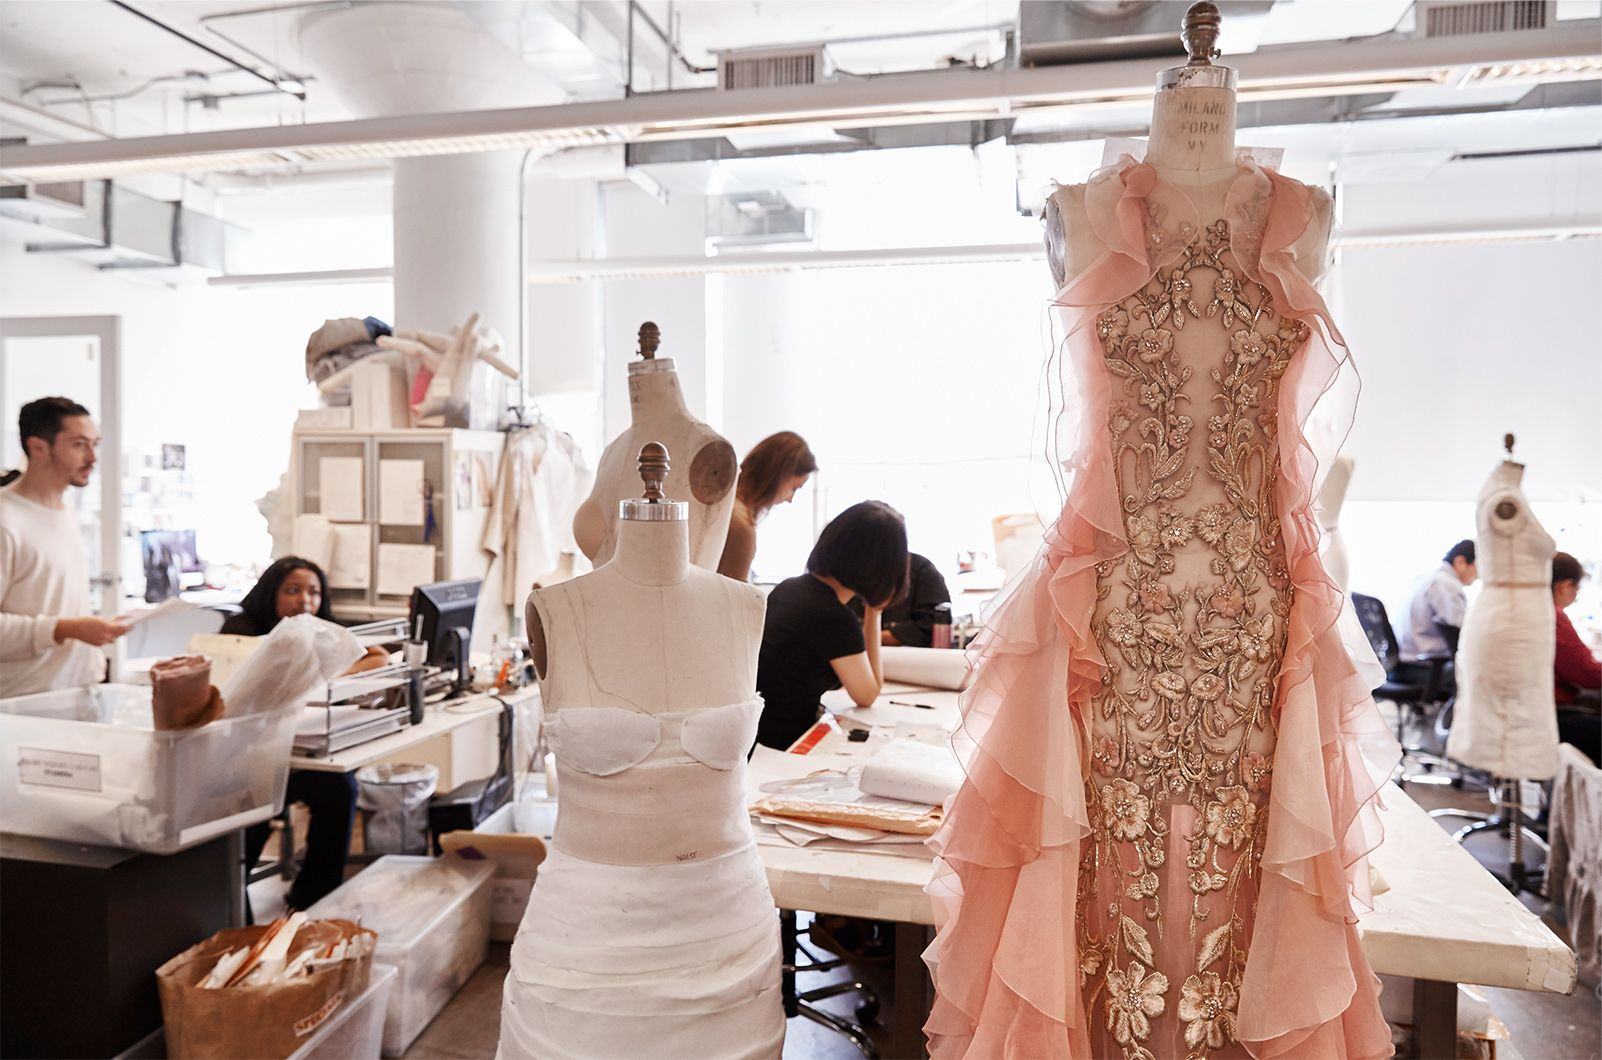 Marchesa dresses on doll forms in various states of completion